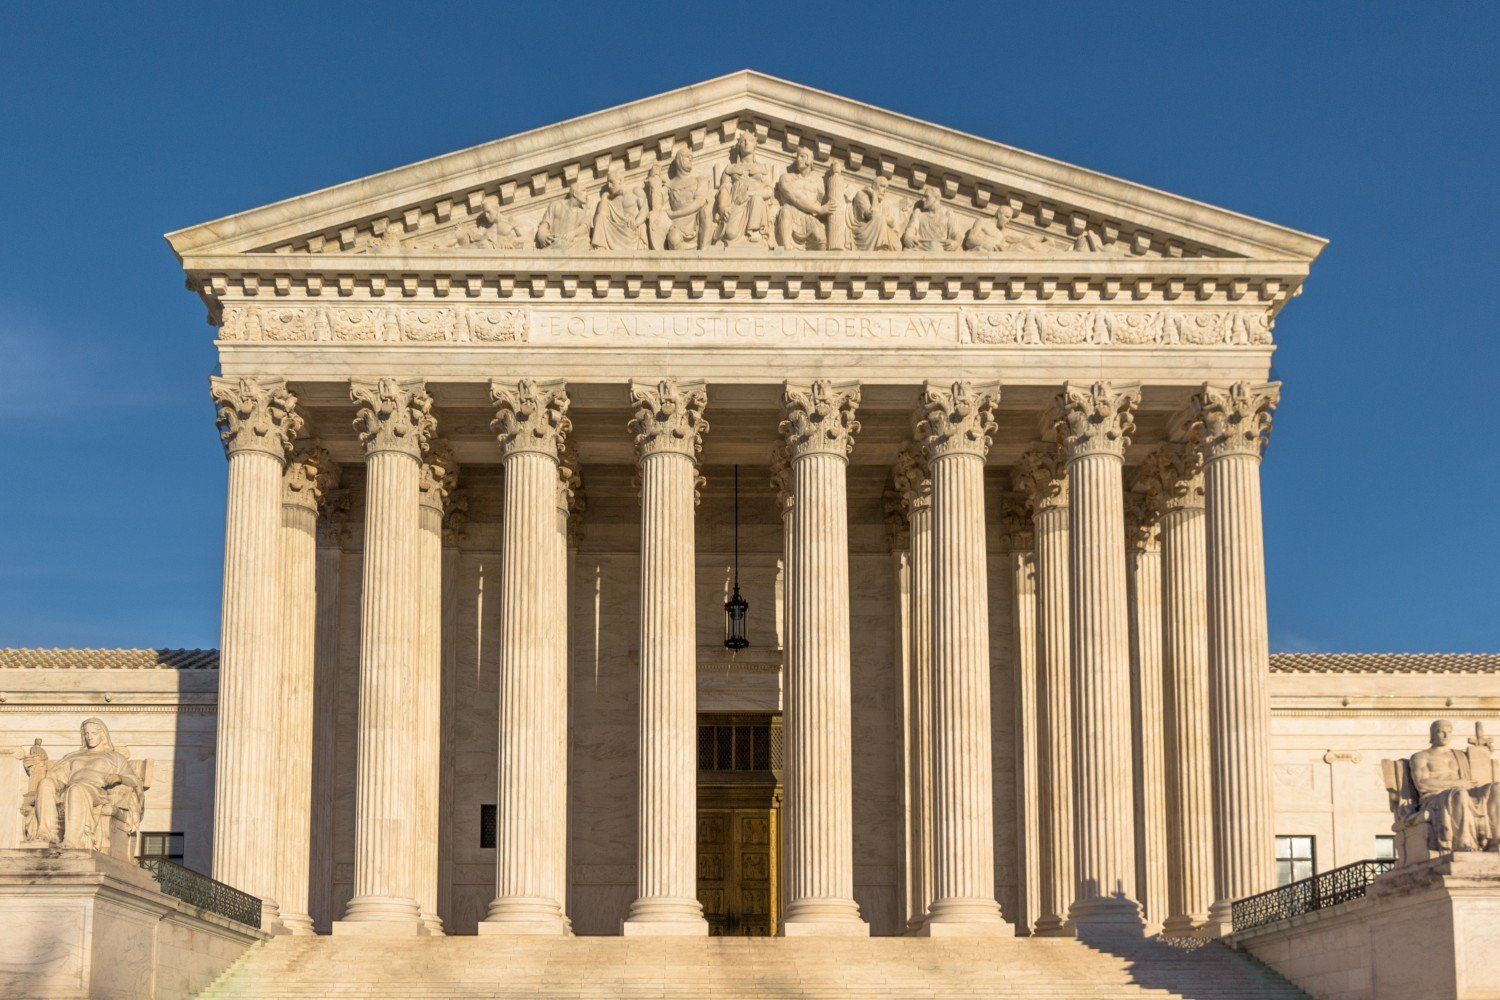 Aged out immigrants, Supreme Court